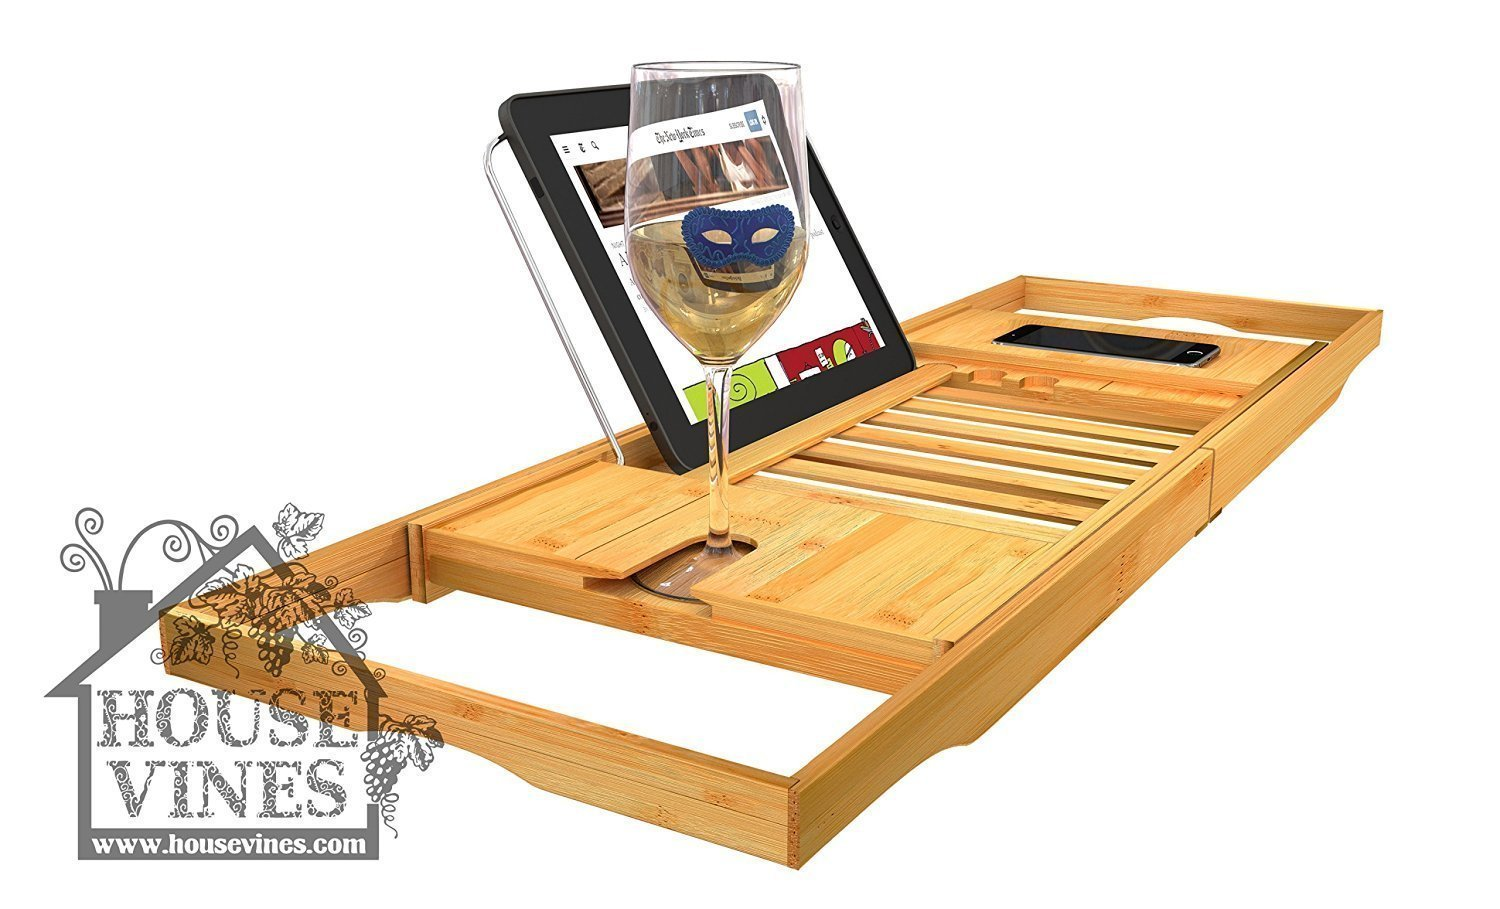 Amazon.com: Luxury Bathtub Caddy Tray with Extending Sides ~ Bamboo ...